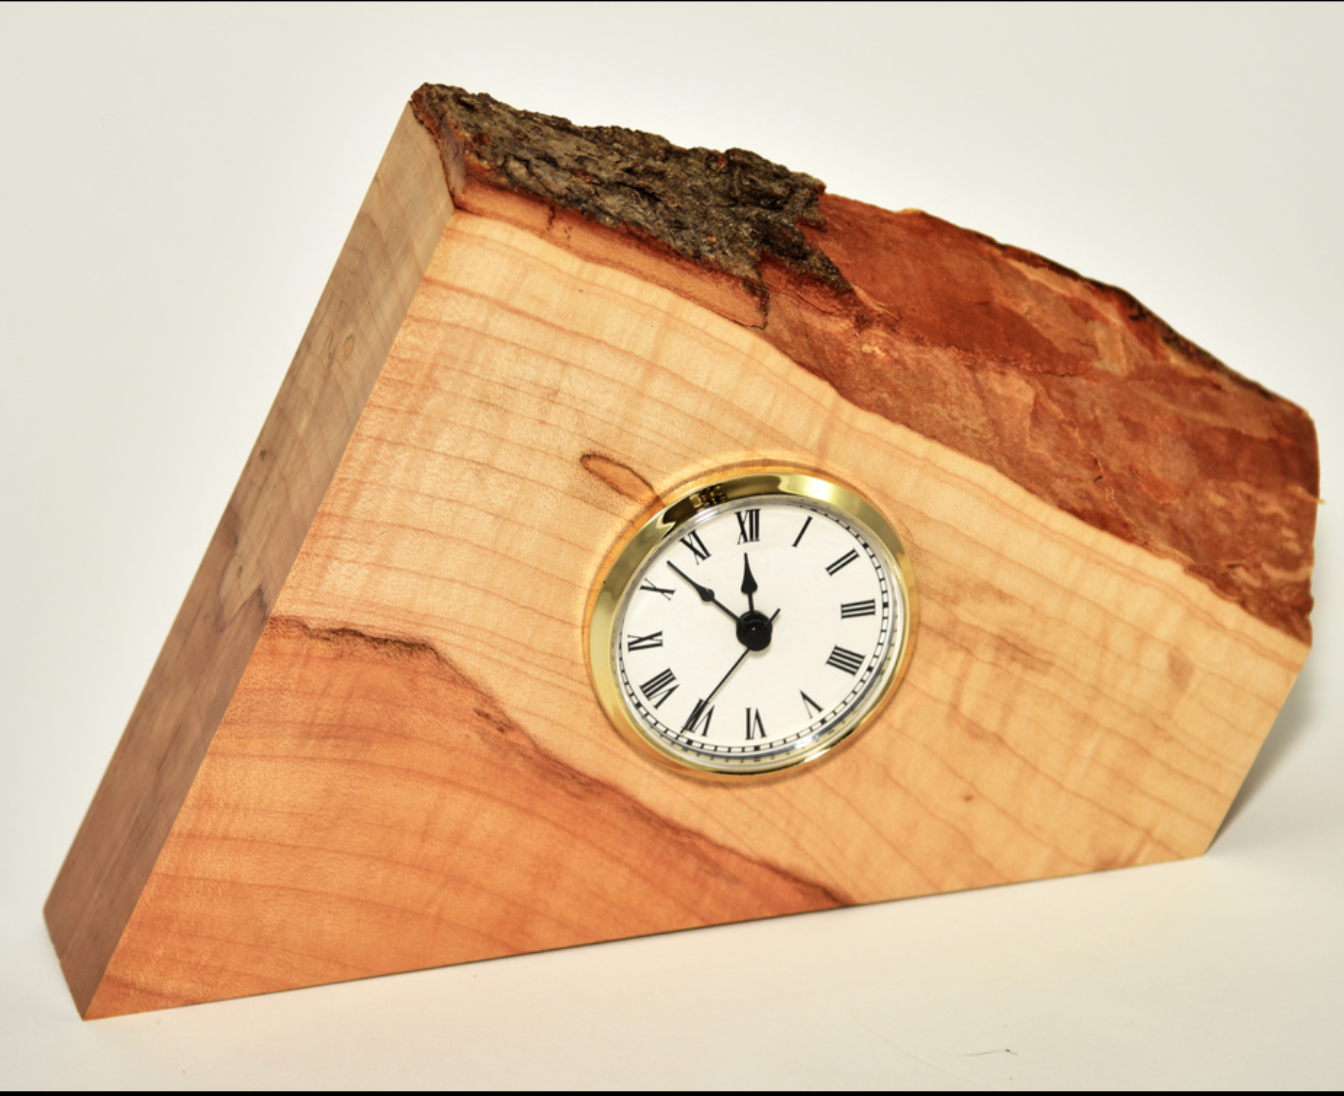 Amber Taylor - I take a variety of hardwoods and mill, laminate and finish them into functional wood art; end-grain cutting boards, lazy susans, bowls, clocks, wall hangers, and desk organizer.